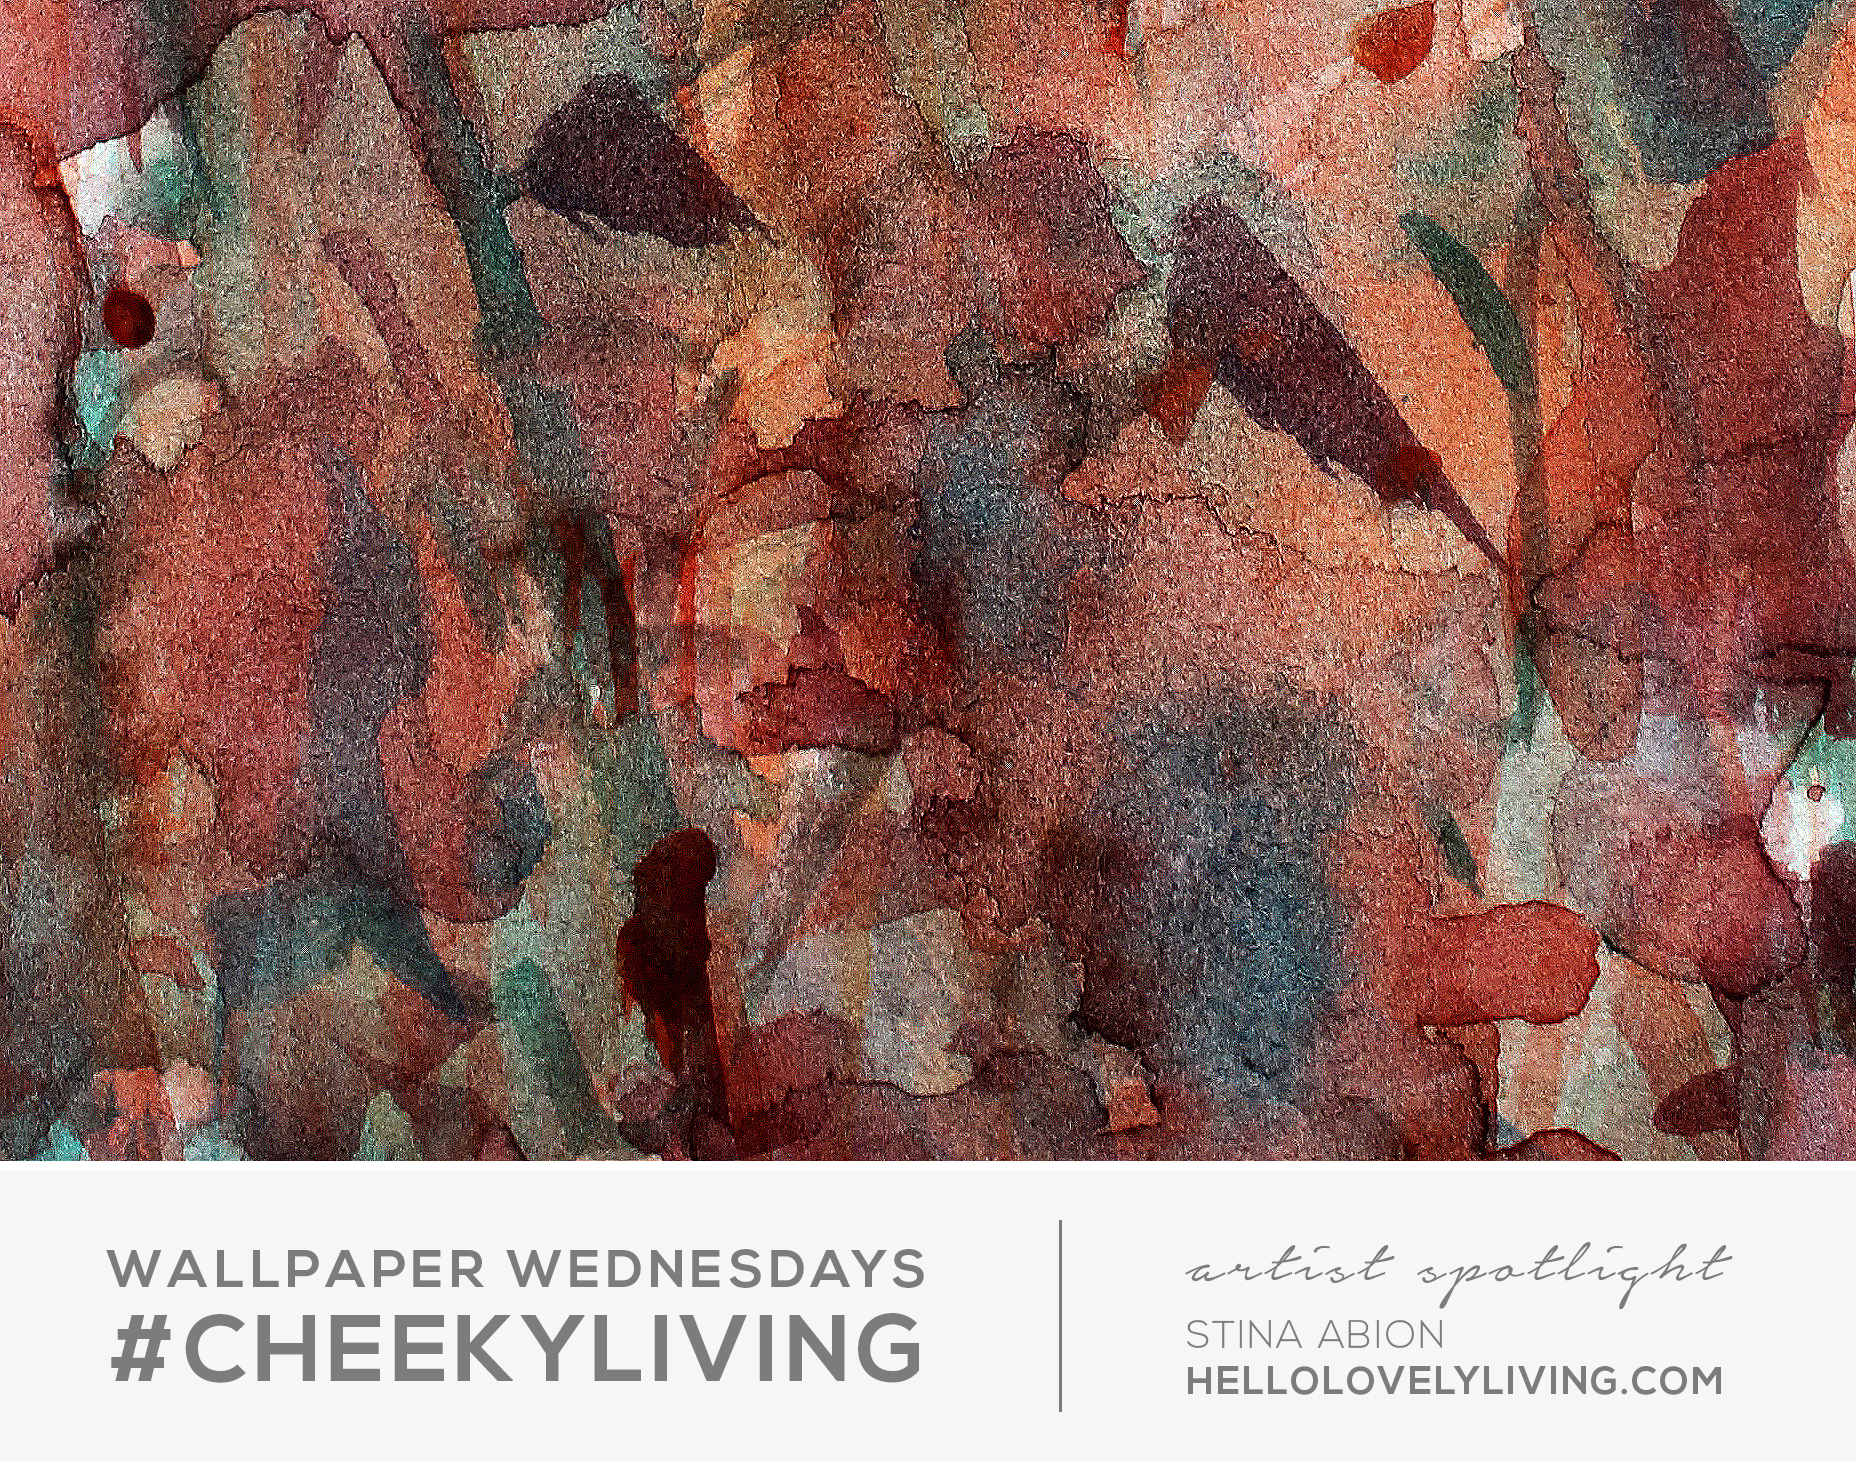 Free Wallpapers | Hell Lovely Living